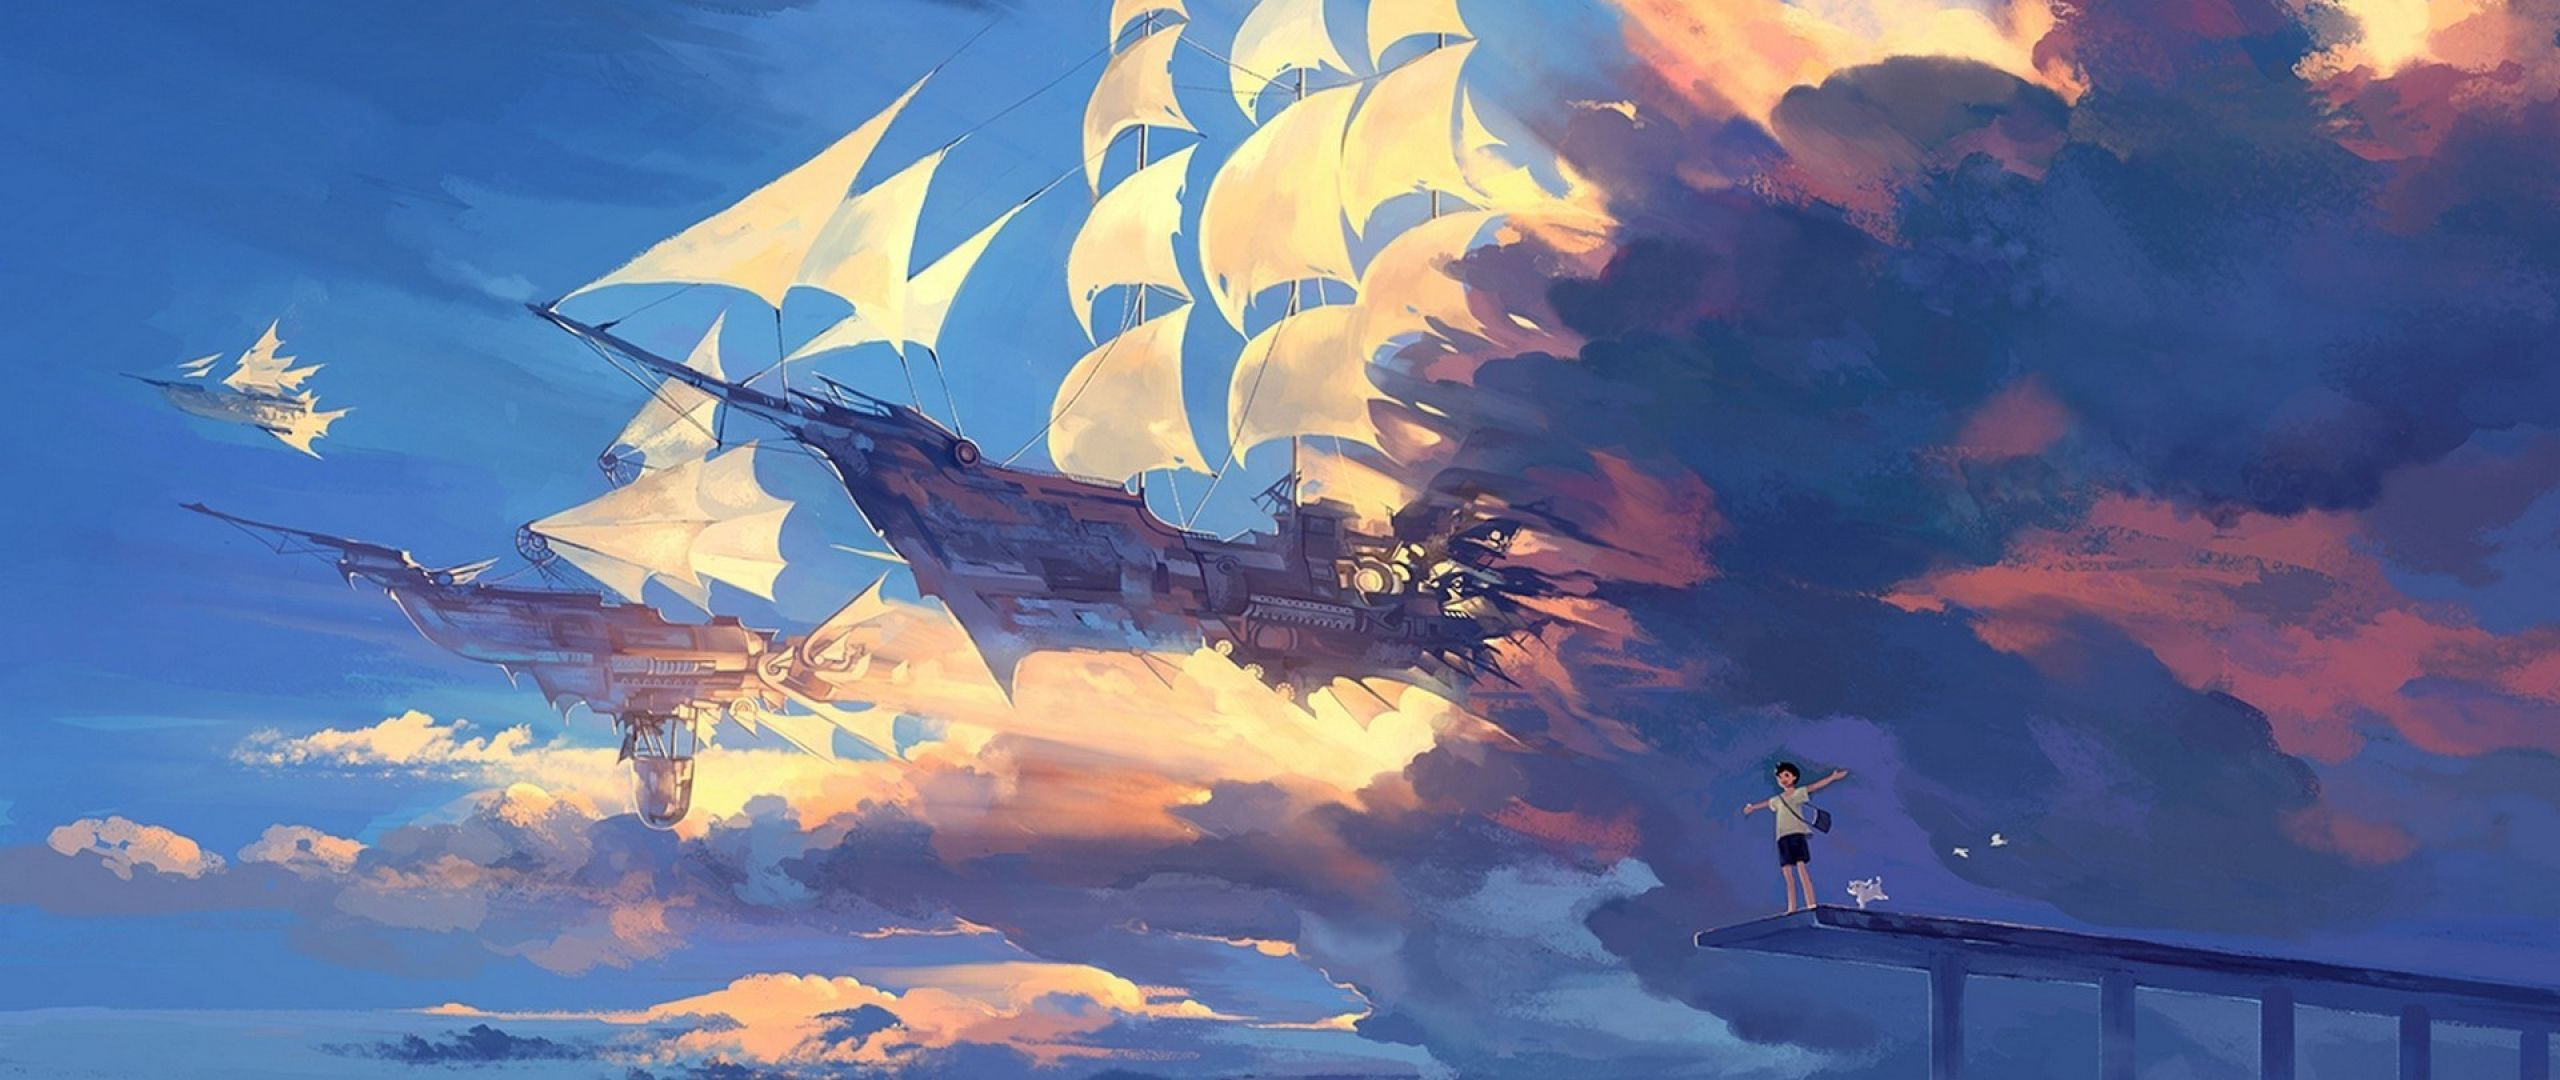 Hanyijie Sky Scenery Ship Anime Art 2560x1080 Jpg 2560 1080 Art Digital Fantasy Fav Emotion Anime Scenery Anime Scenery Wallpaper Animation Art